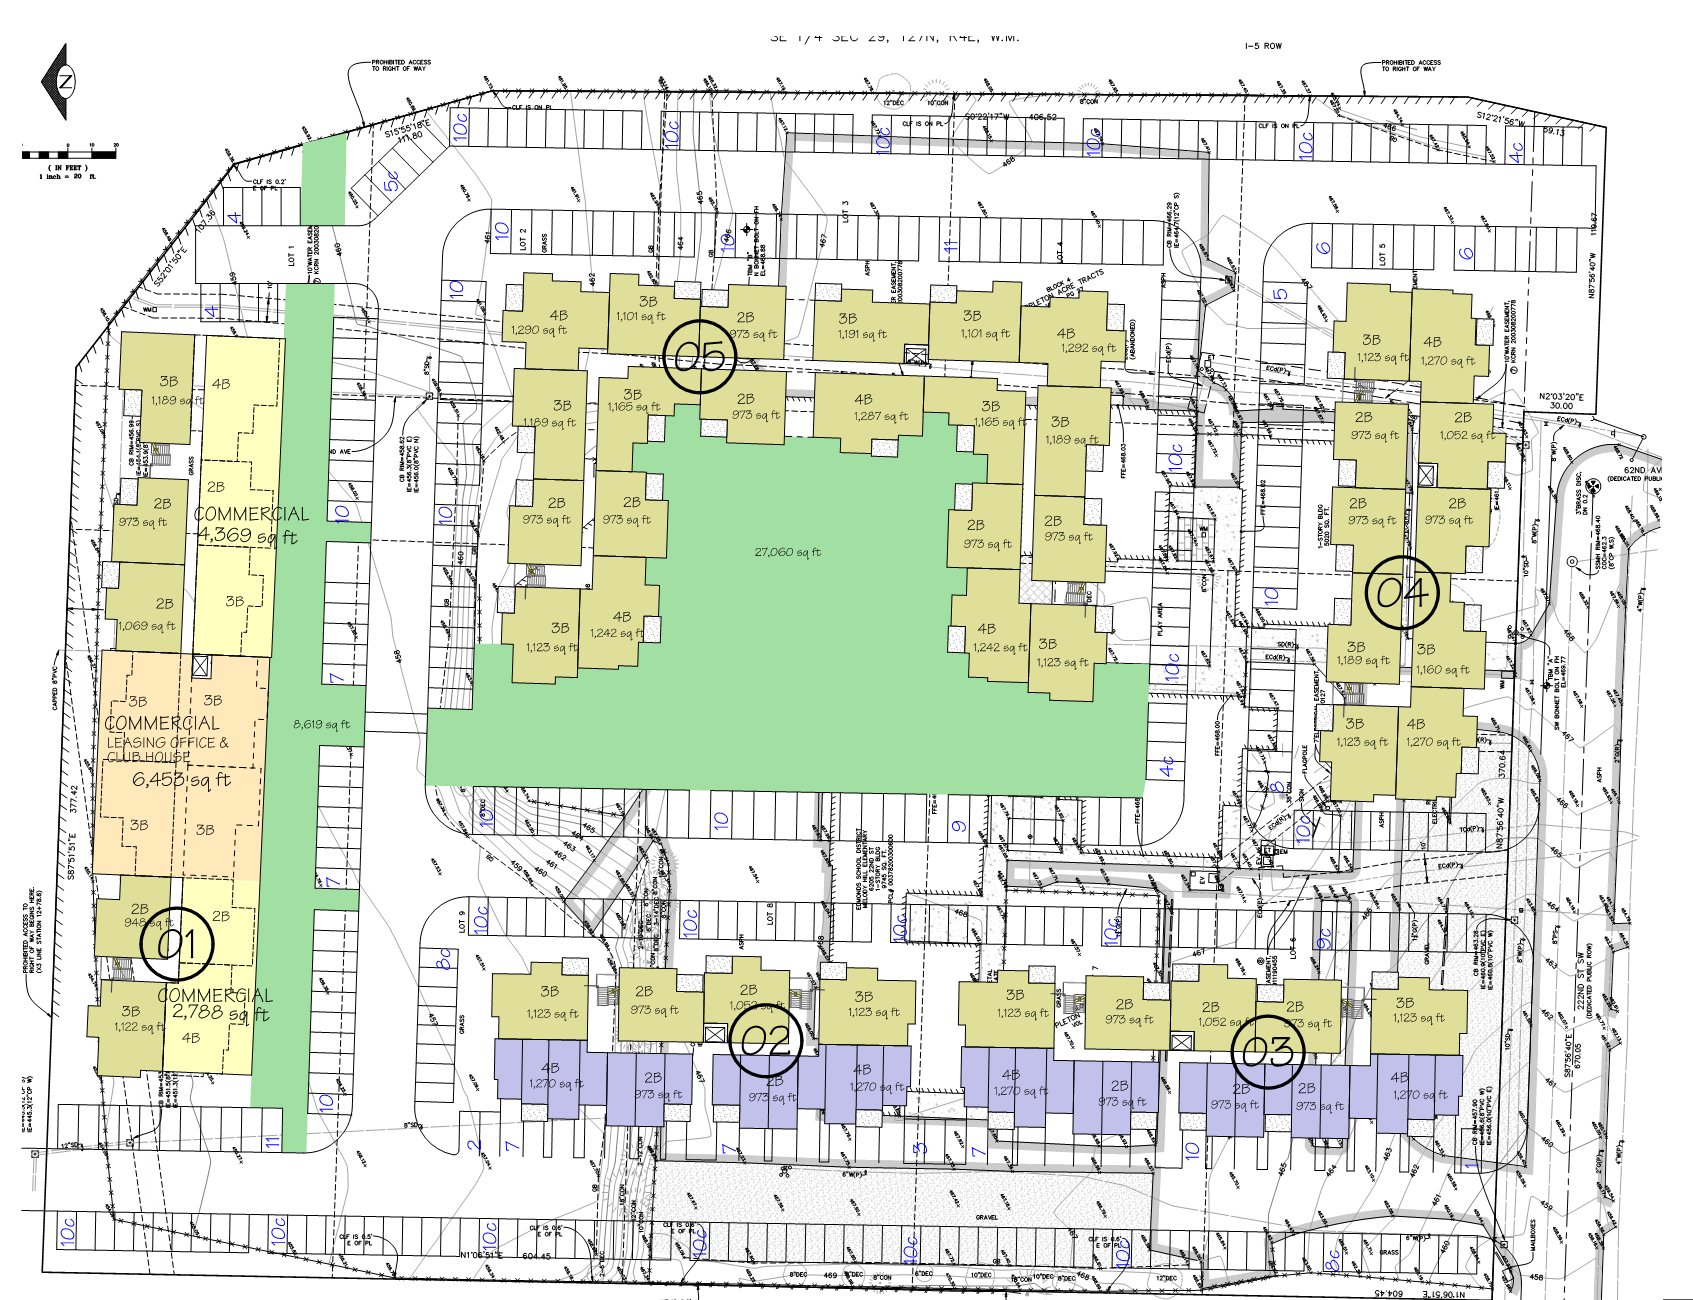 298 multifamily residential units planned for melody hill site